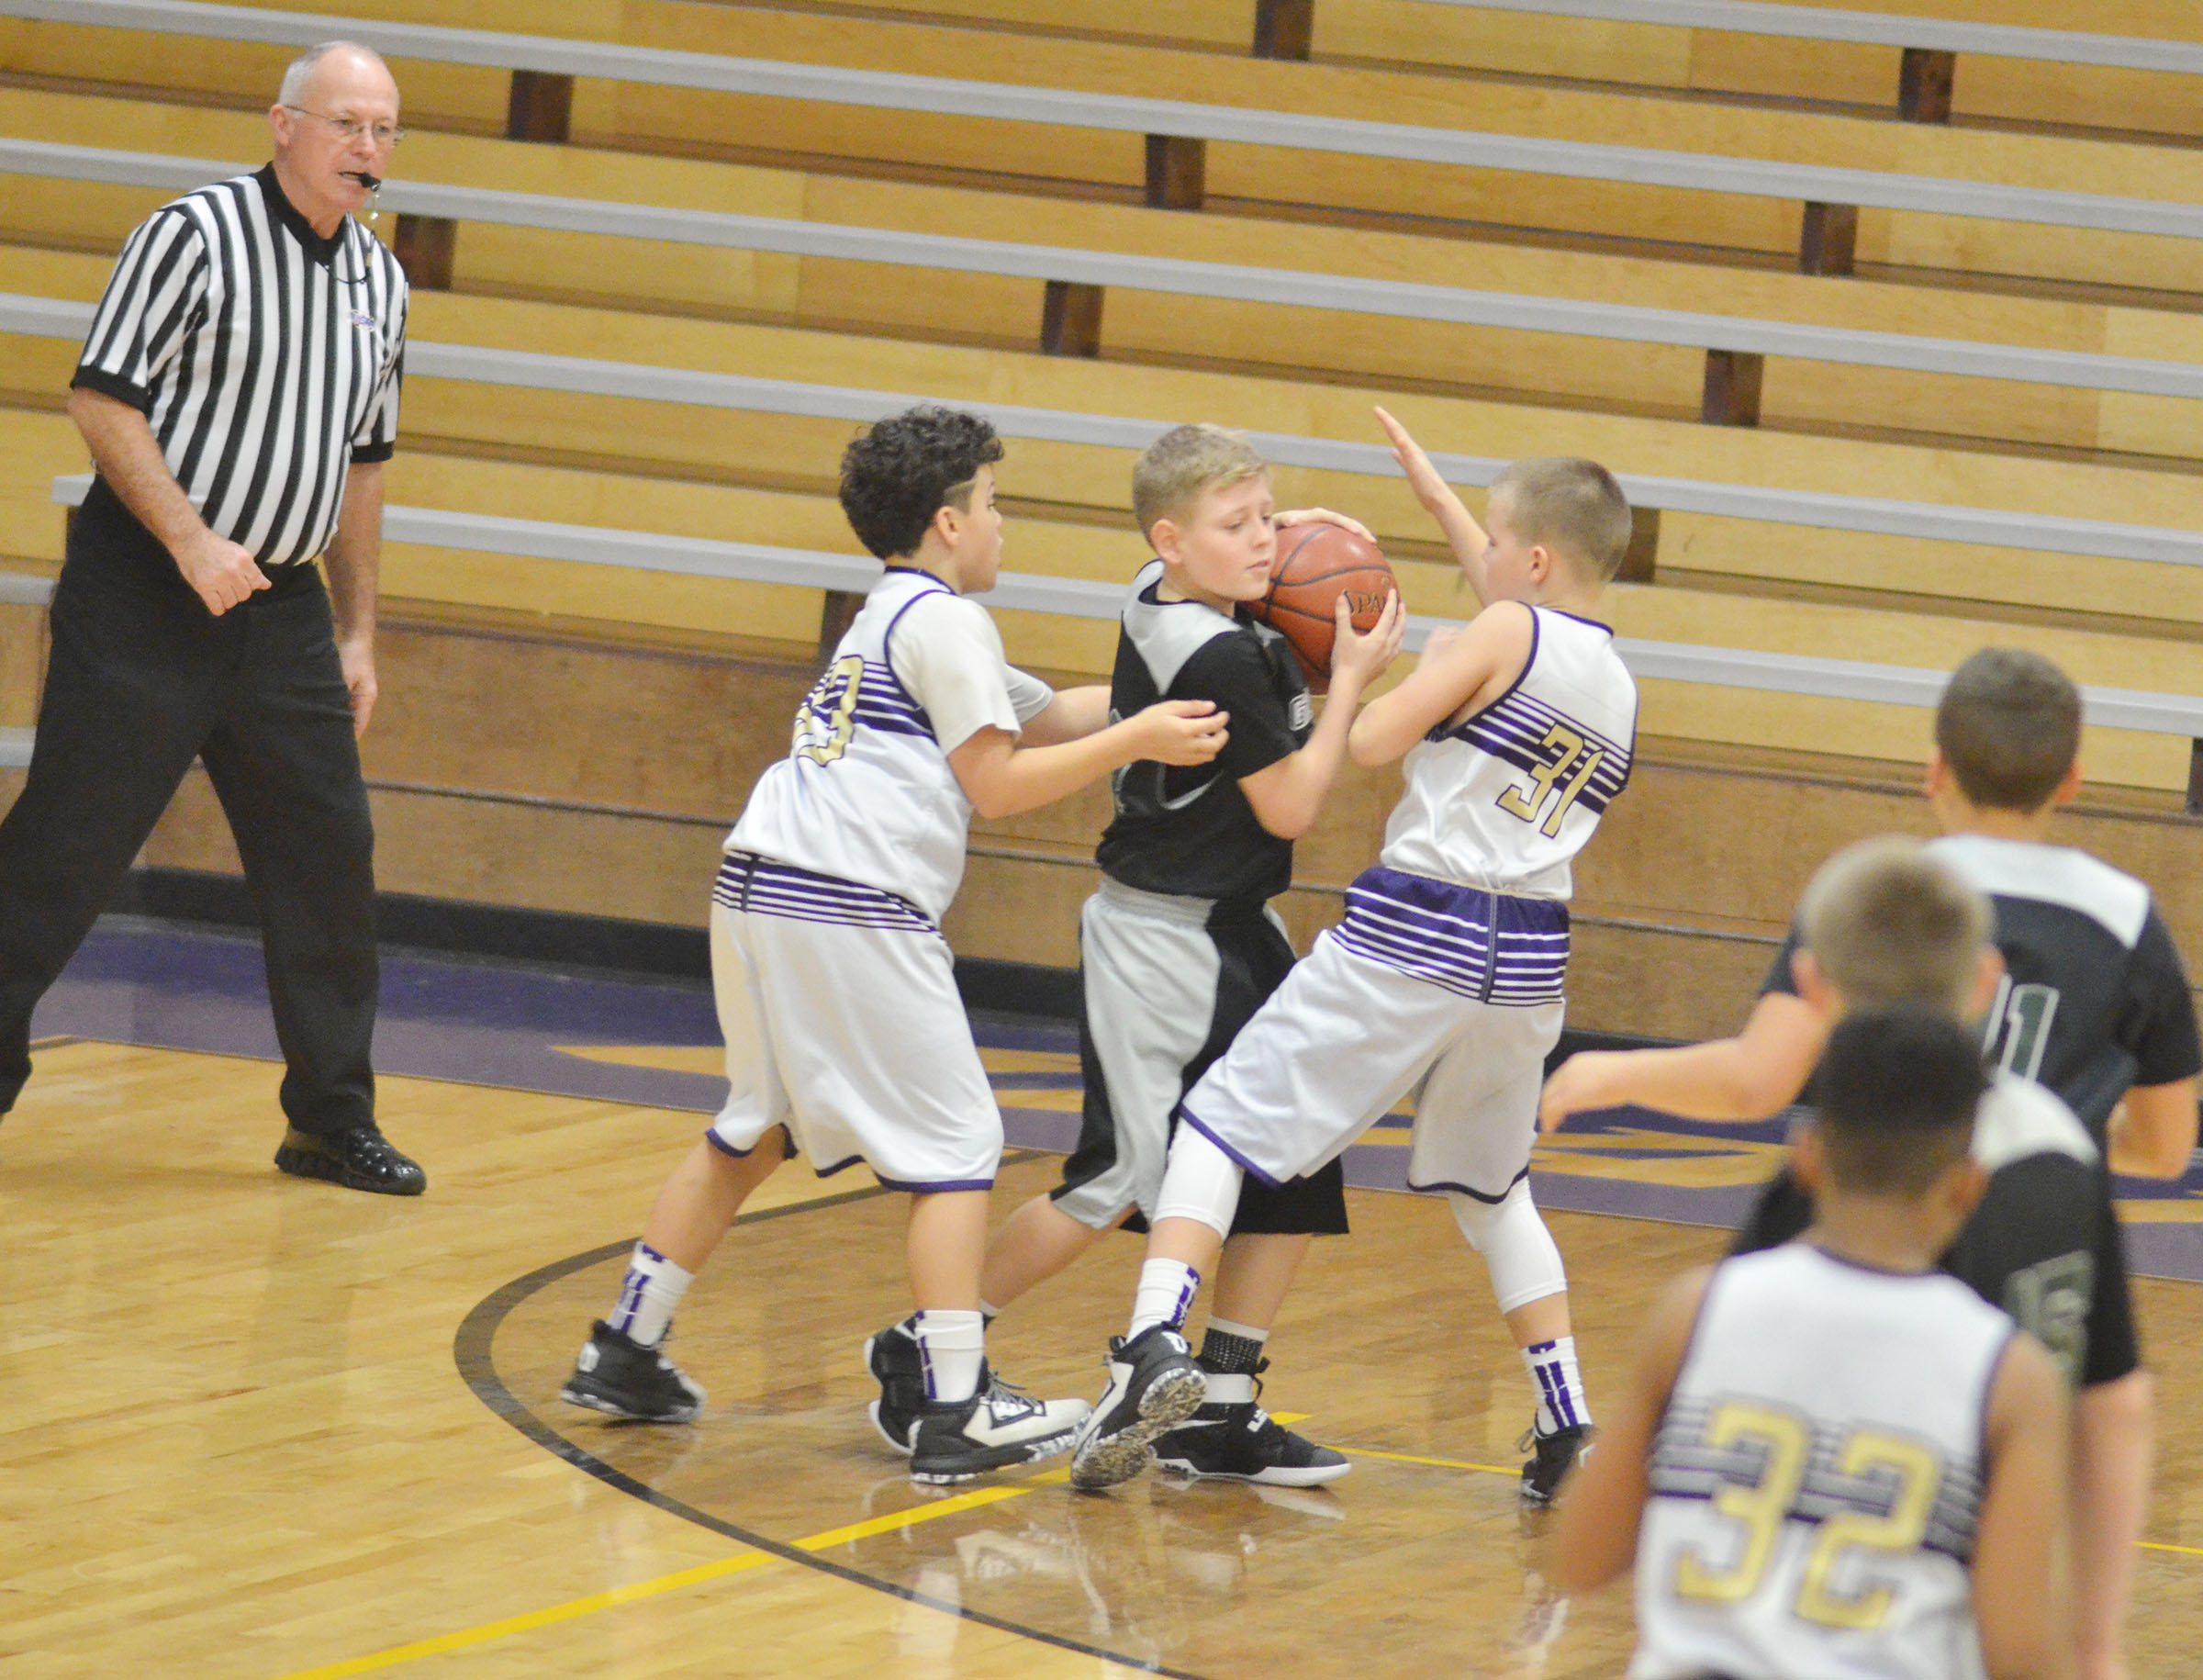 CMS sixth-graders Kaydon Taylor, at left, and Konner Forbis battle for the ball.